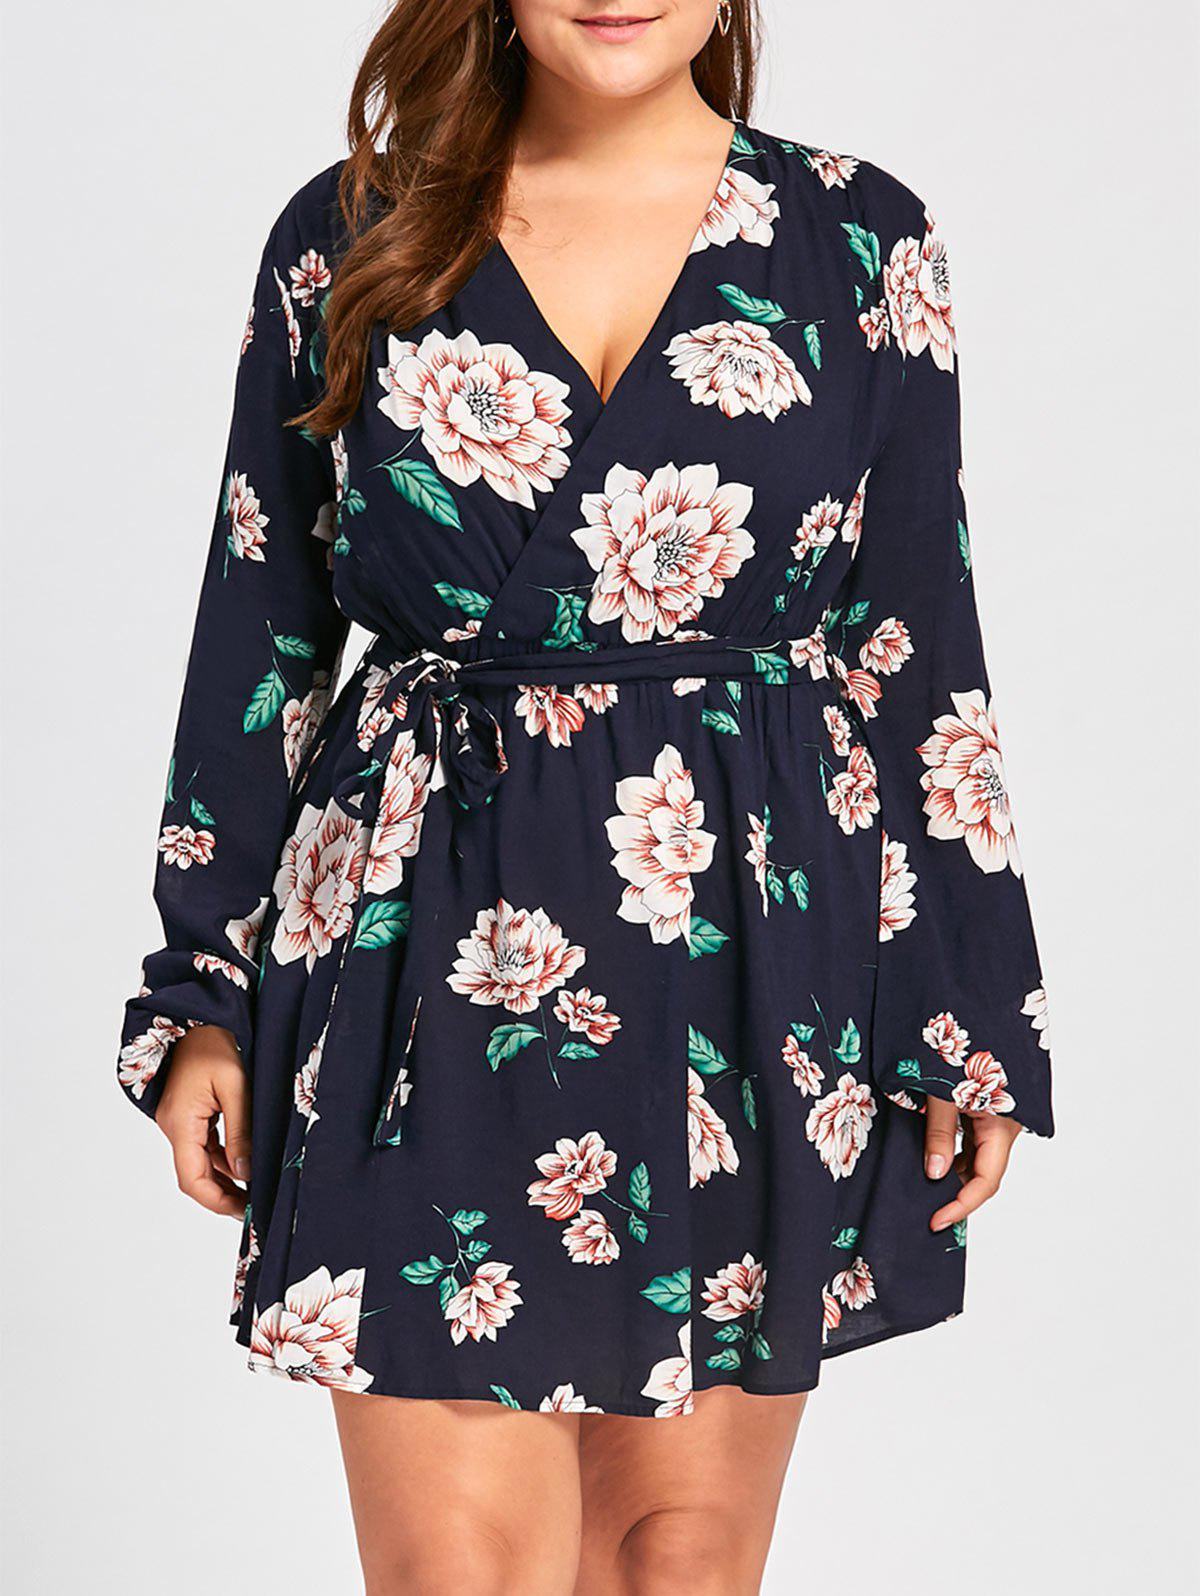 Plus Size Long Sleeve Floral DressWOMEN<br><br>Size: 4XL; Color: BLACK BLUE; Style: Brief; Material: Rayon; Silhouette: A-Line; Dresses Length: Mini; Neckline: V-Neck; Sleeve Length: Long Sleeves; Pattern Type: Floral; With Belt: Yes; Season: Fall,Spring,Summer; Weight: 0.2700kg; Package Contents: 1 x Dress  1 x Belt;